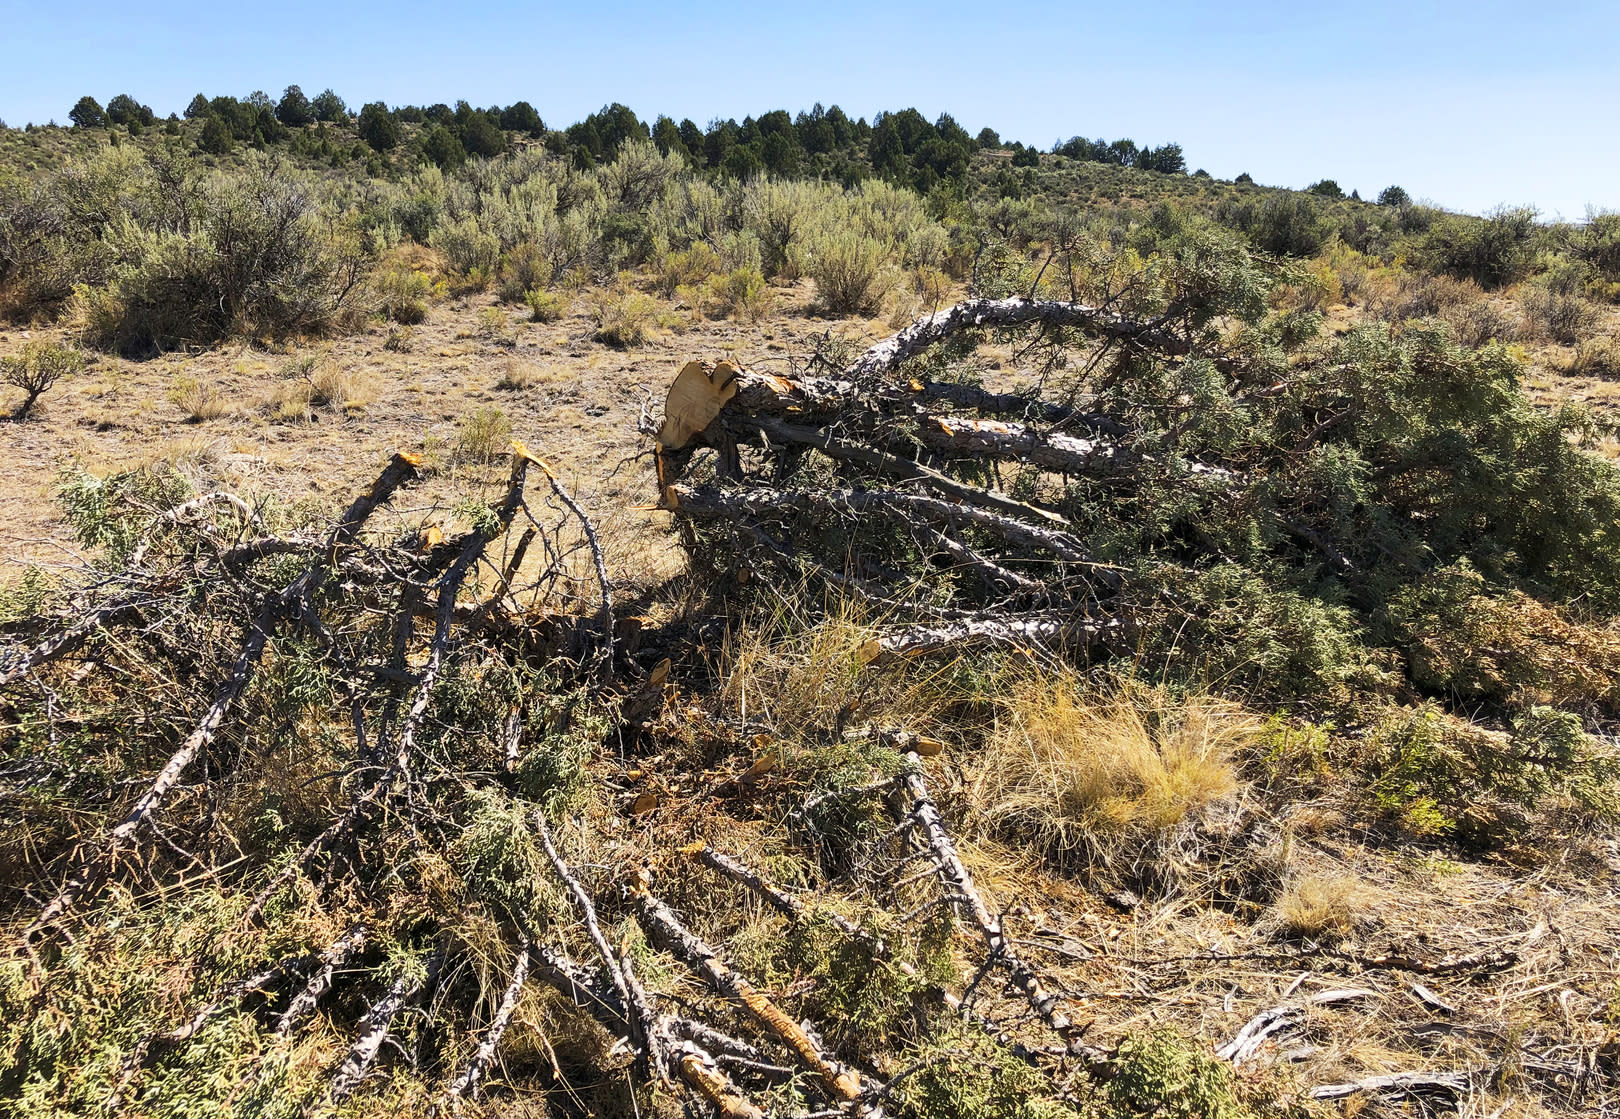 Massive juniper tree-cutting project aims to aid sage grouse